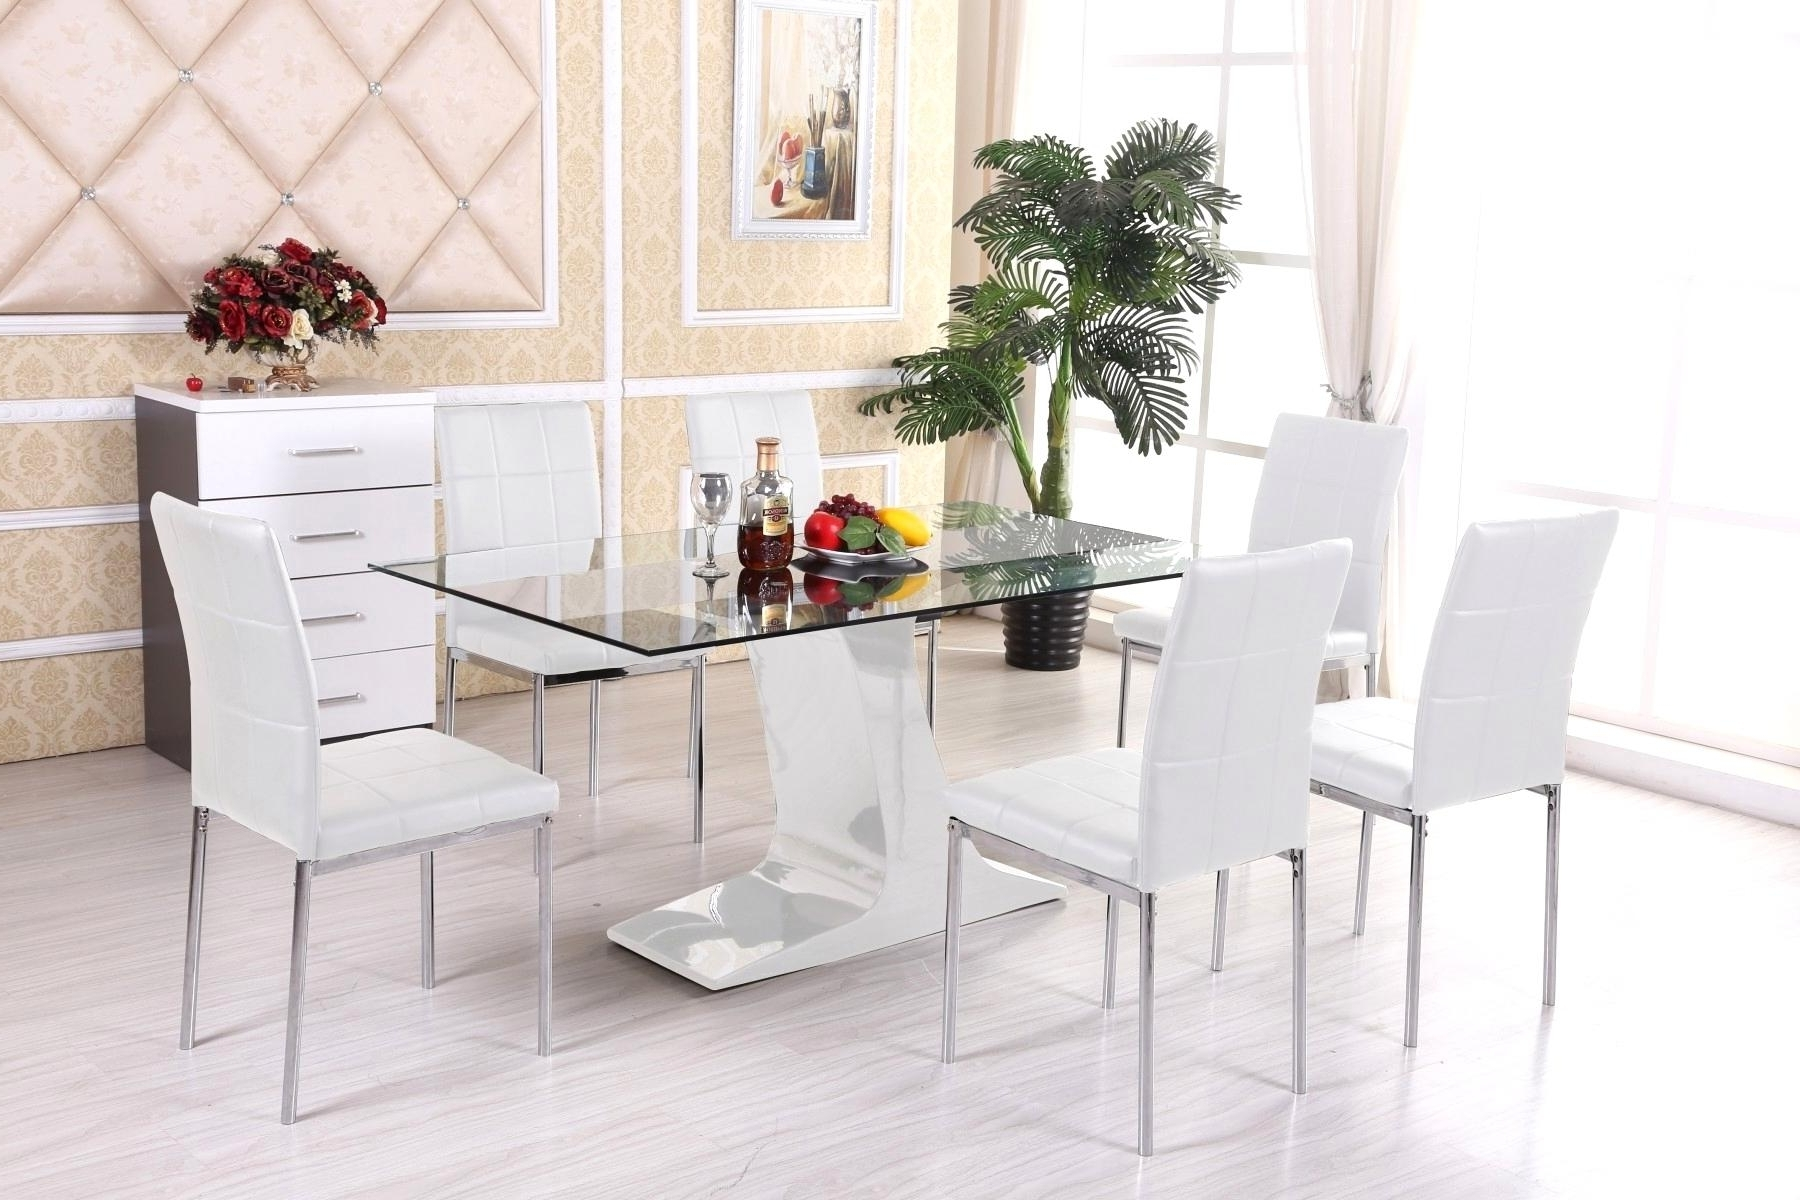 2017 Glass Dining Tables White Chairs Intended For Marvelous Dining Room Sets White Glass Ining Table And Chairs Modern (View 1 of 25)